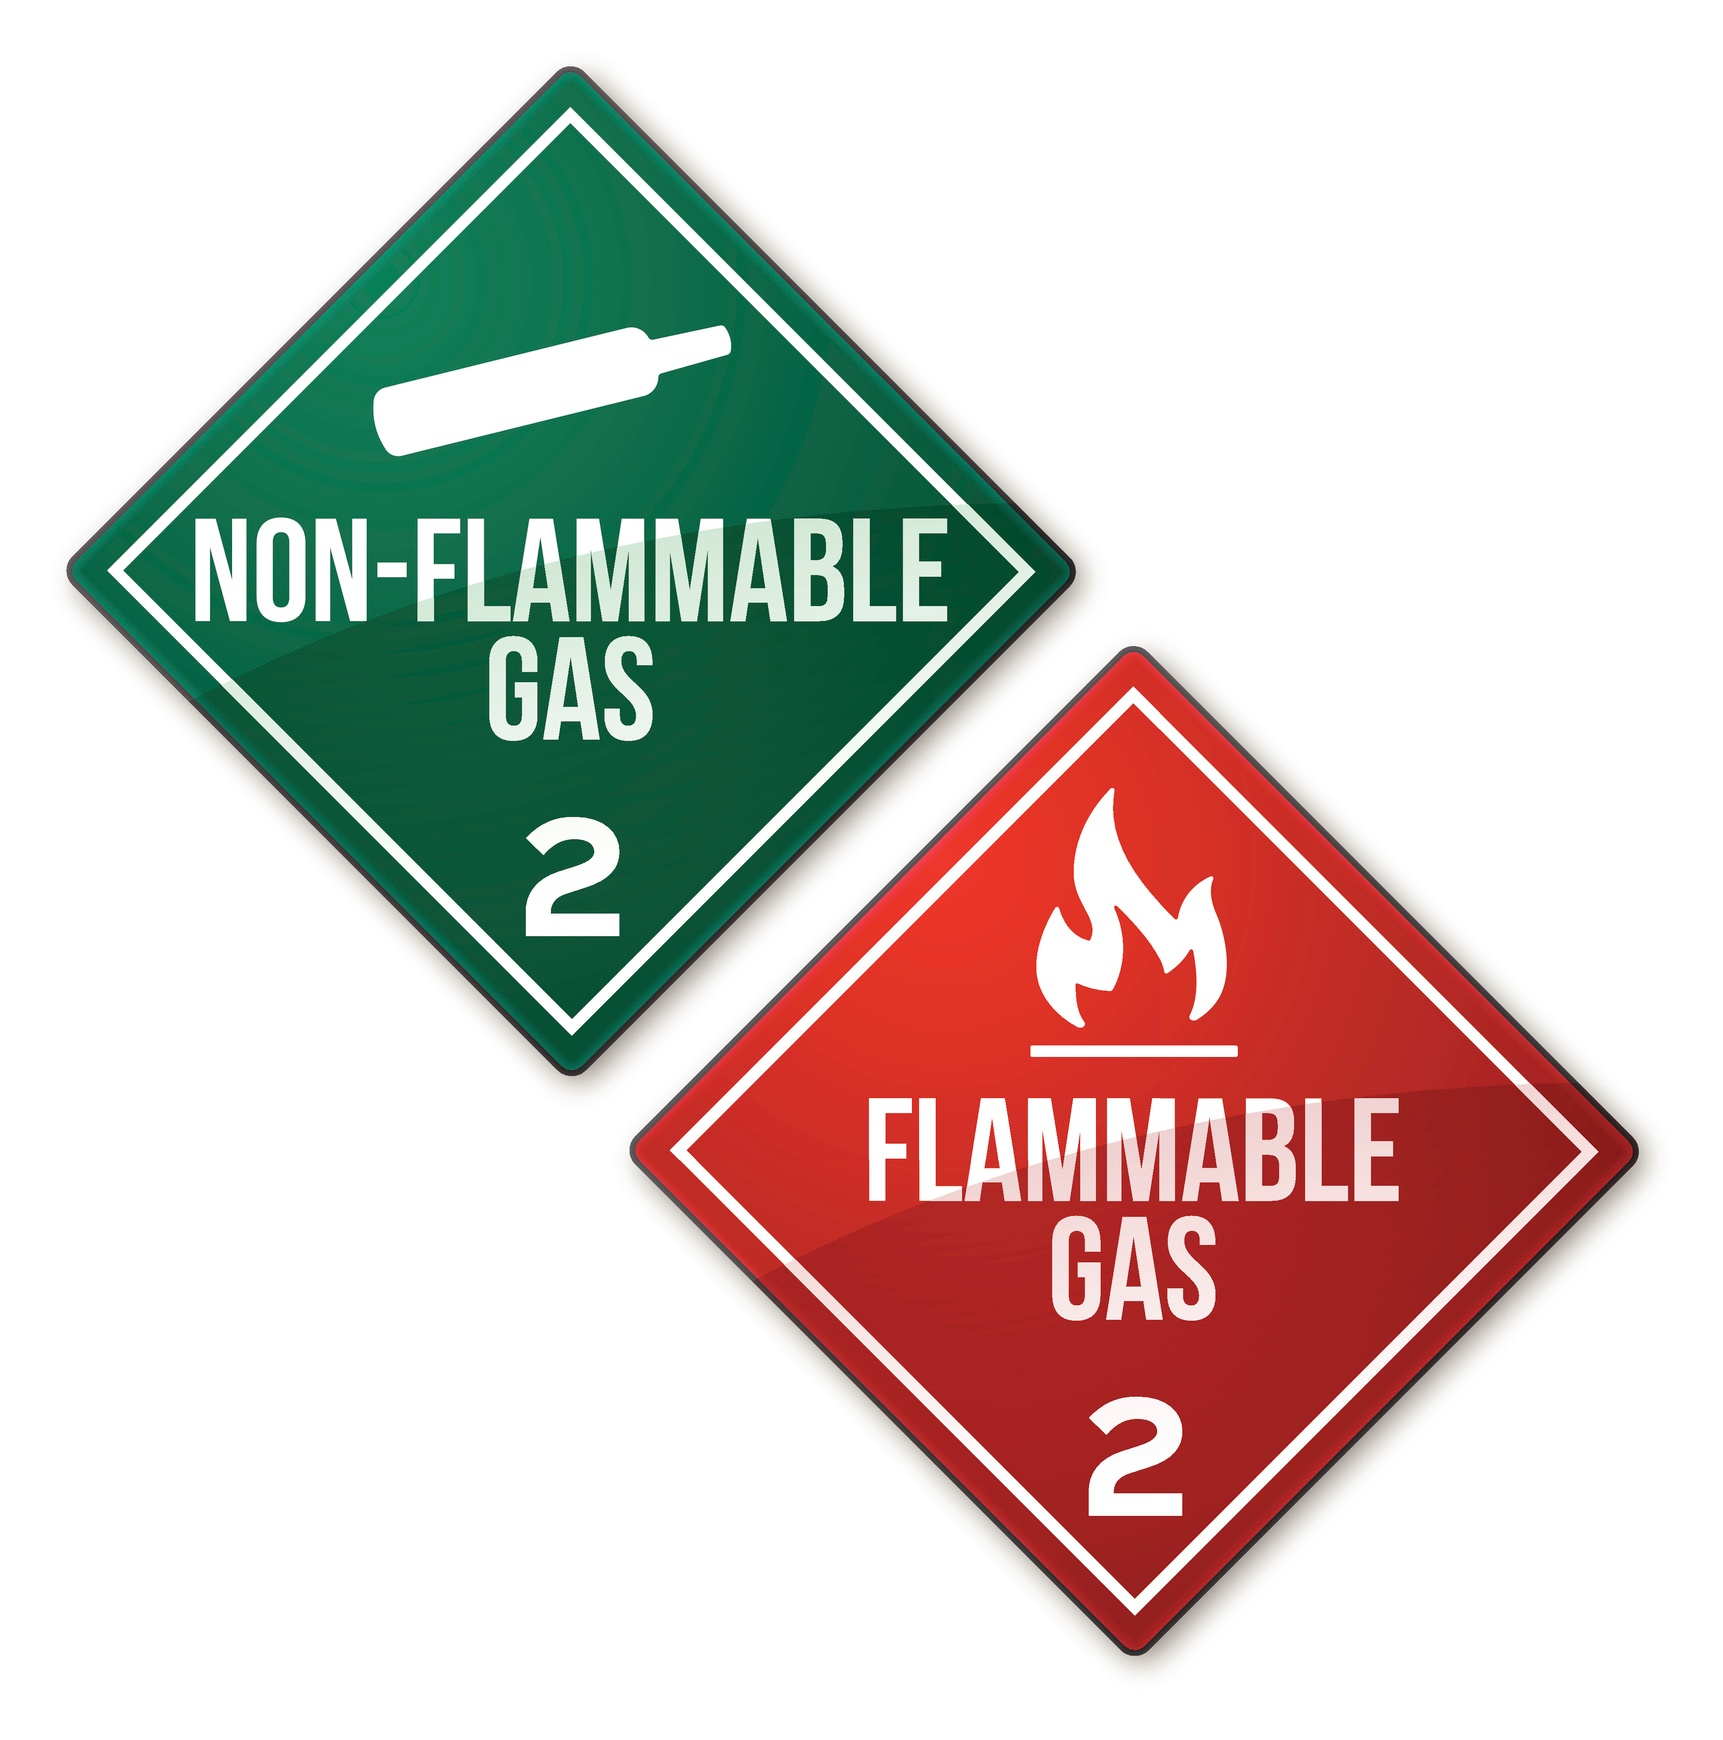 Flammable Gas and Modular Accident Analysis Software